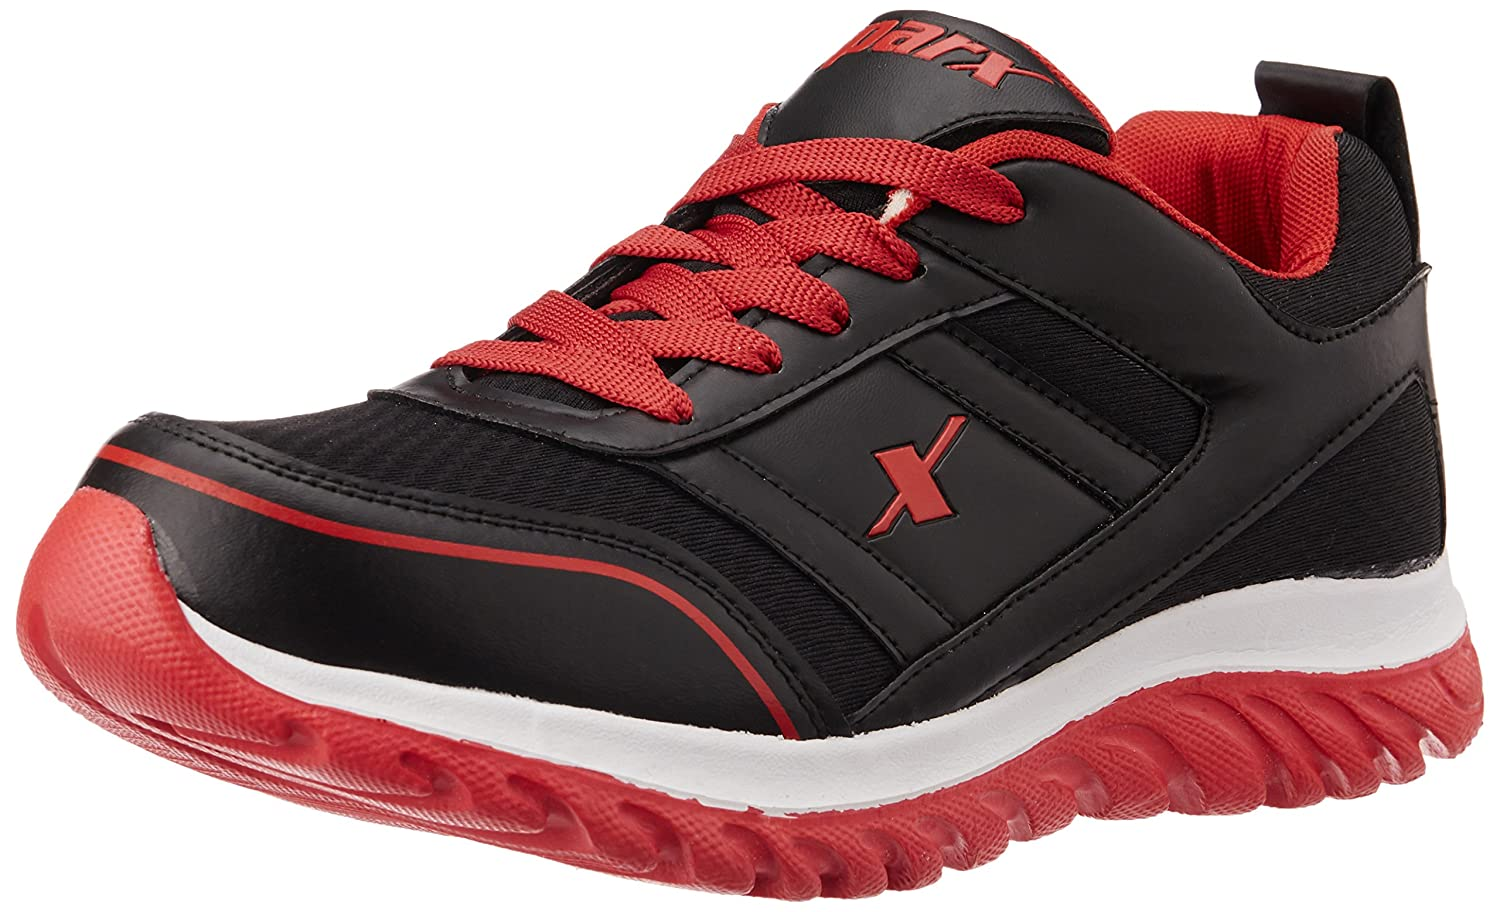 Sparx Men's running shoes red color